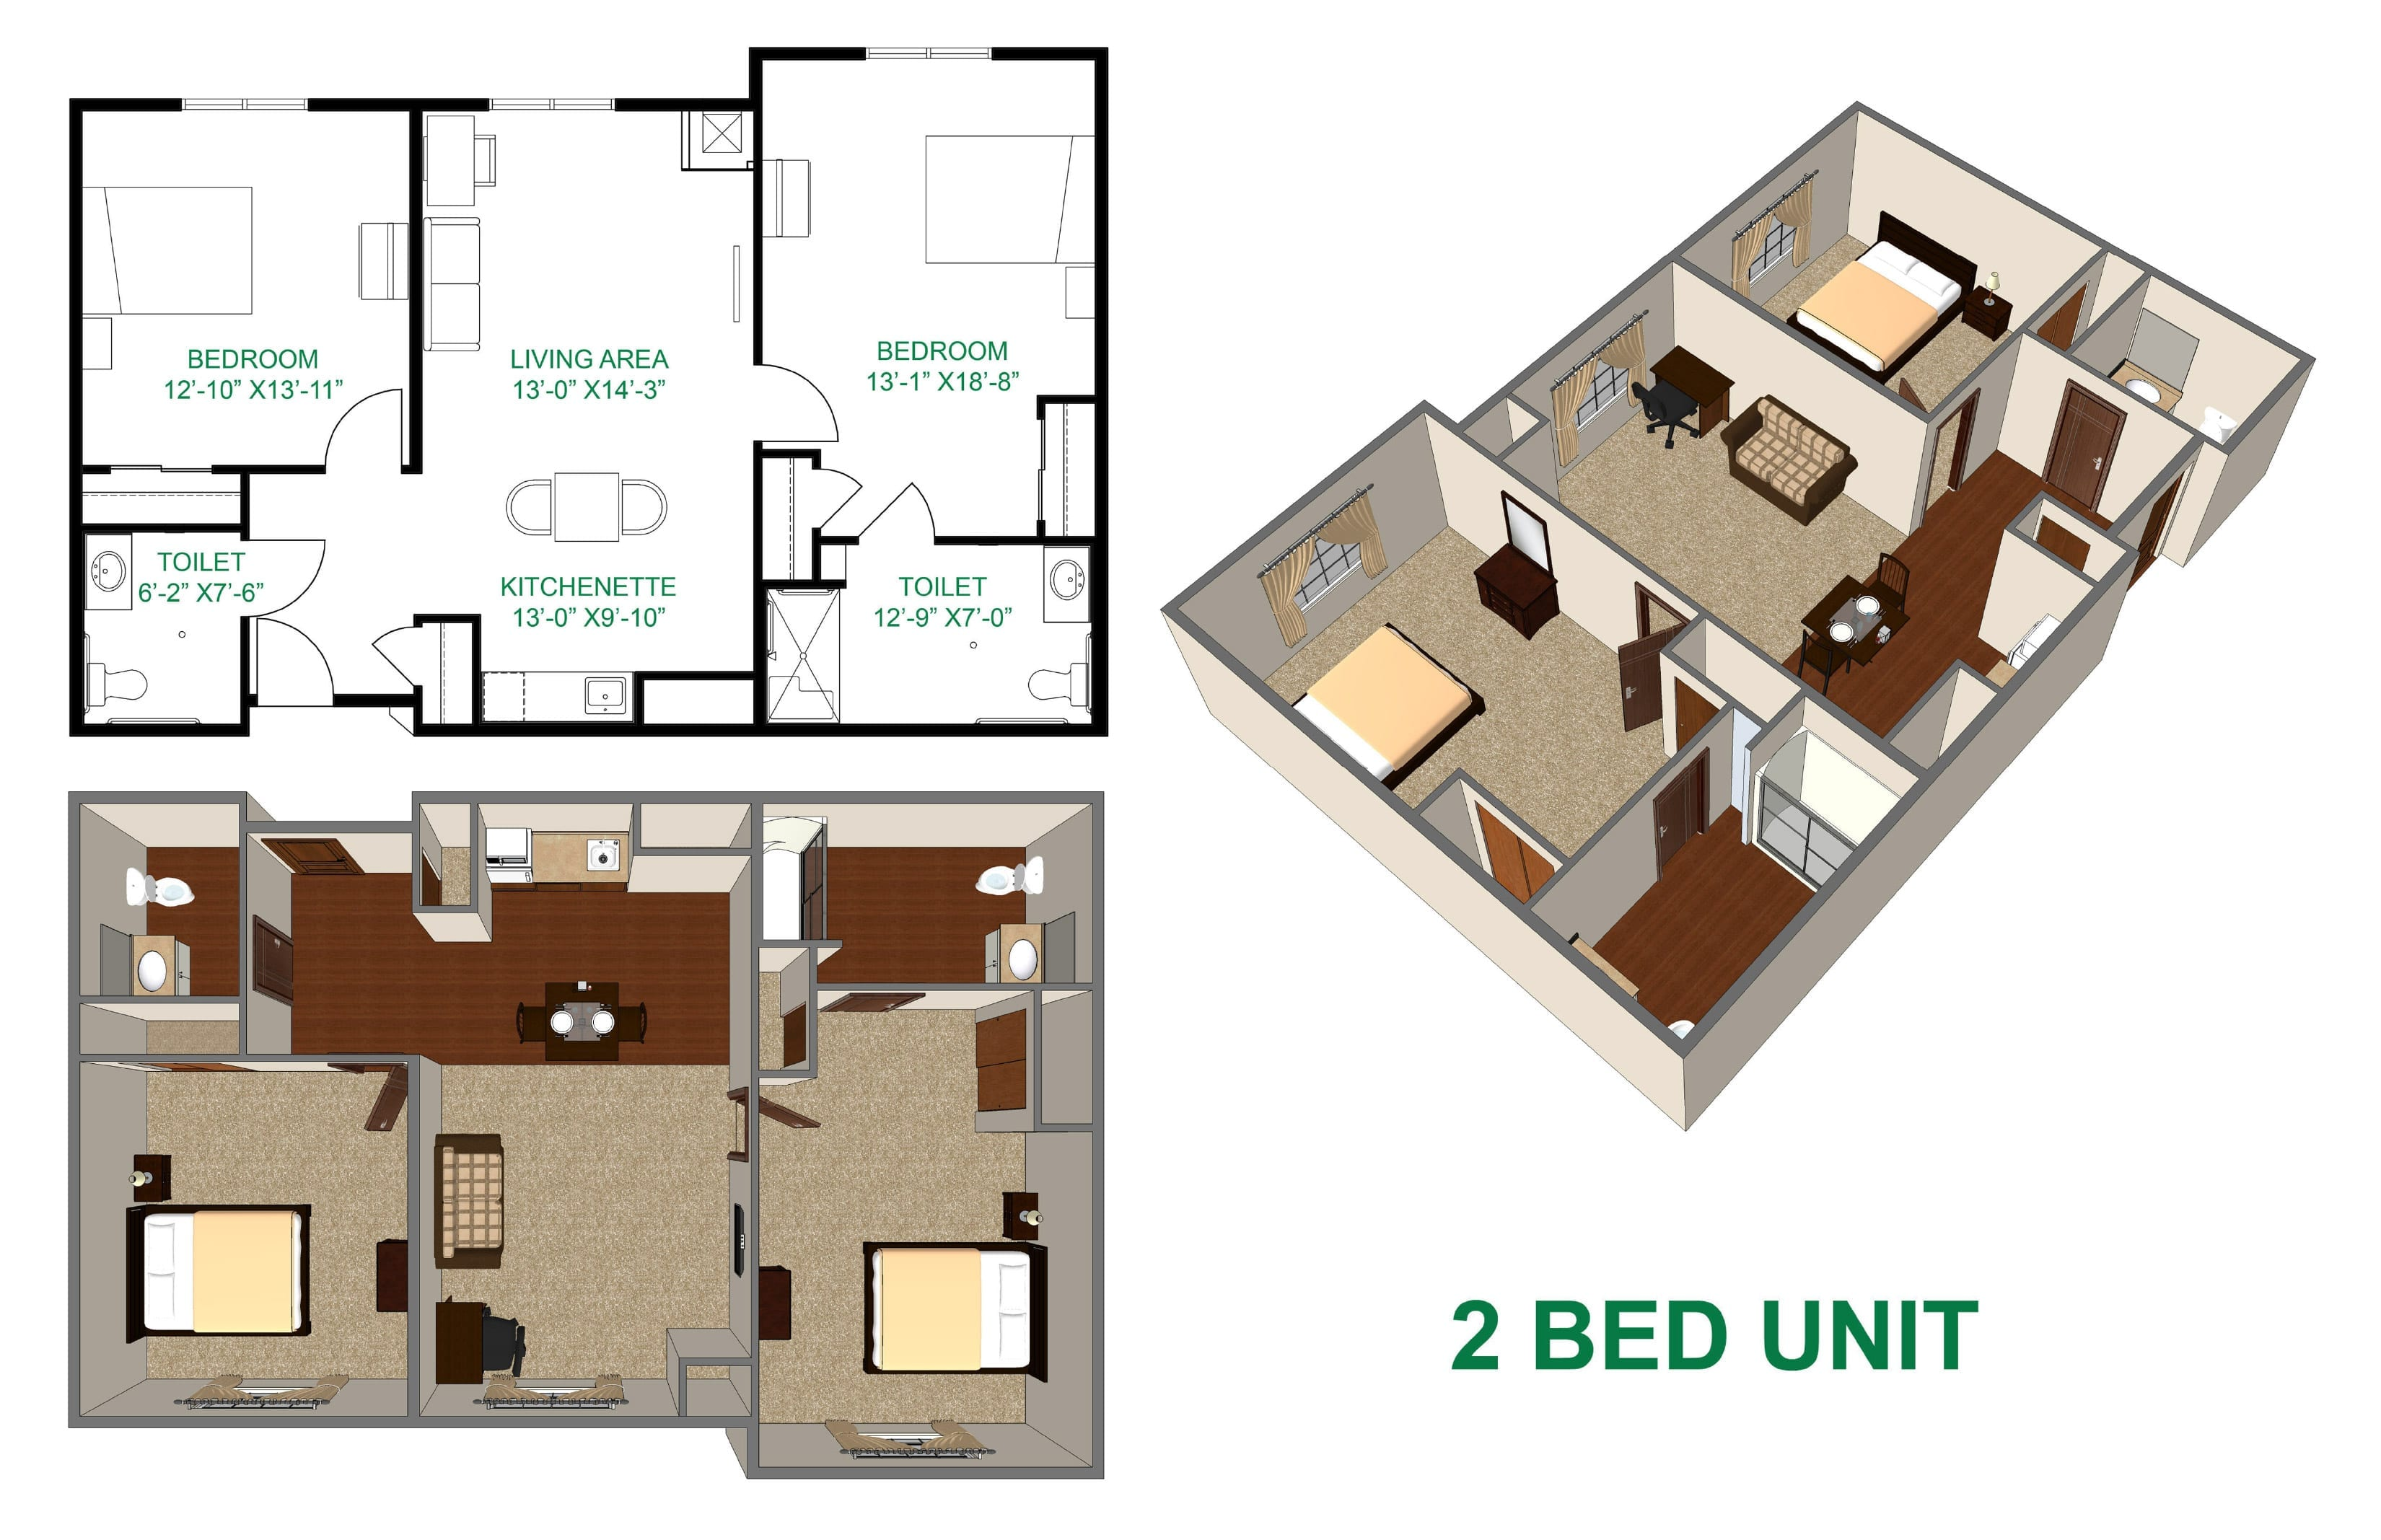 assisted living bedroom 2 layout